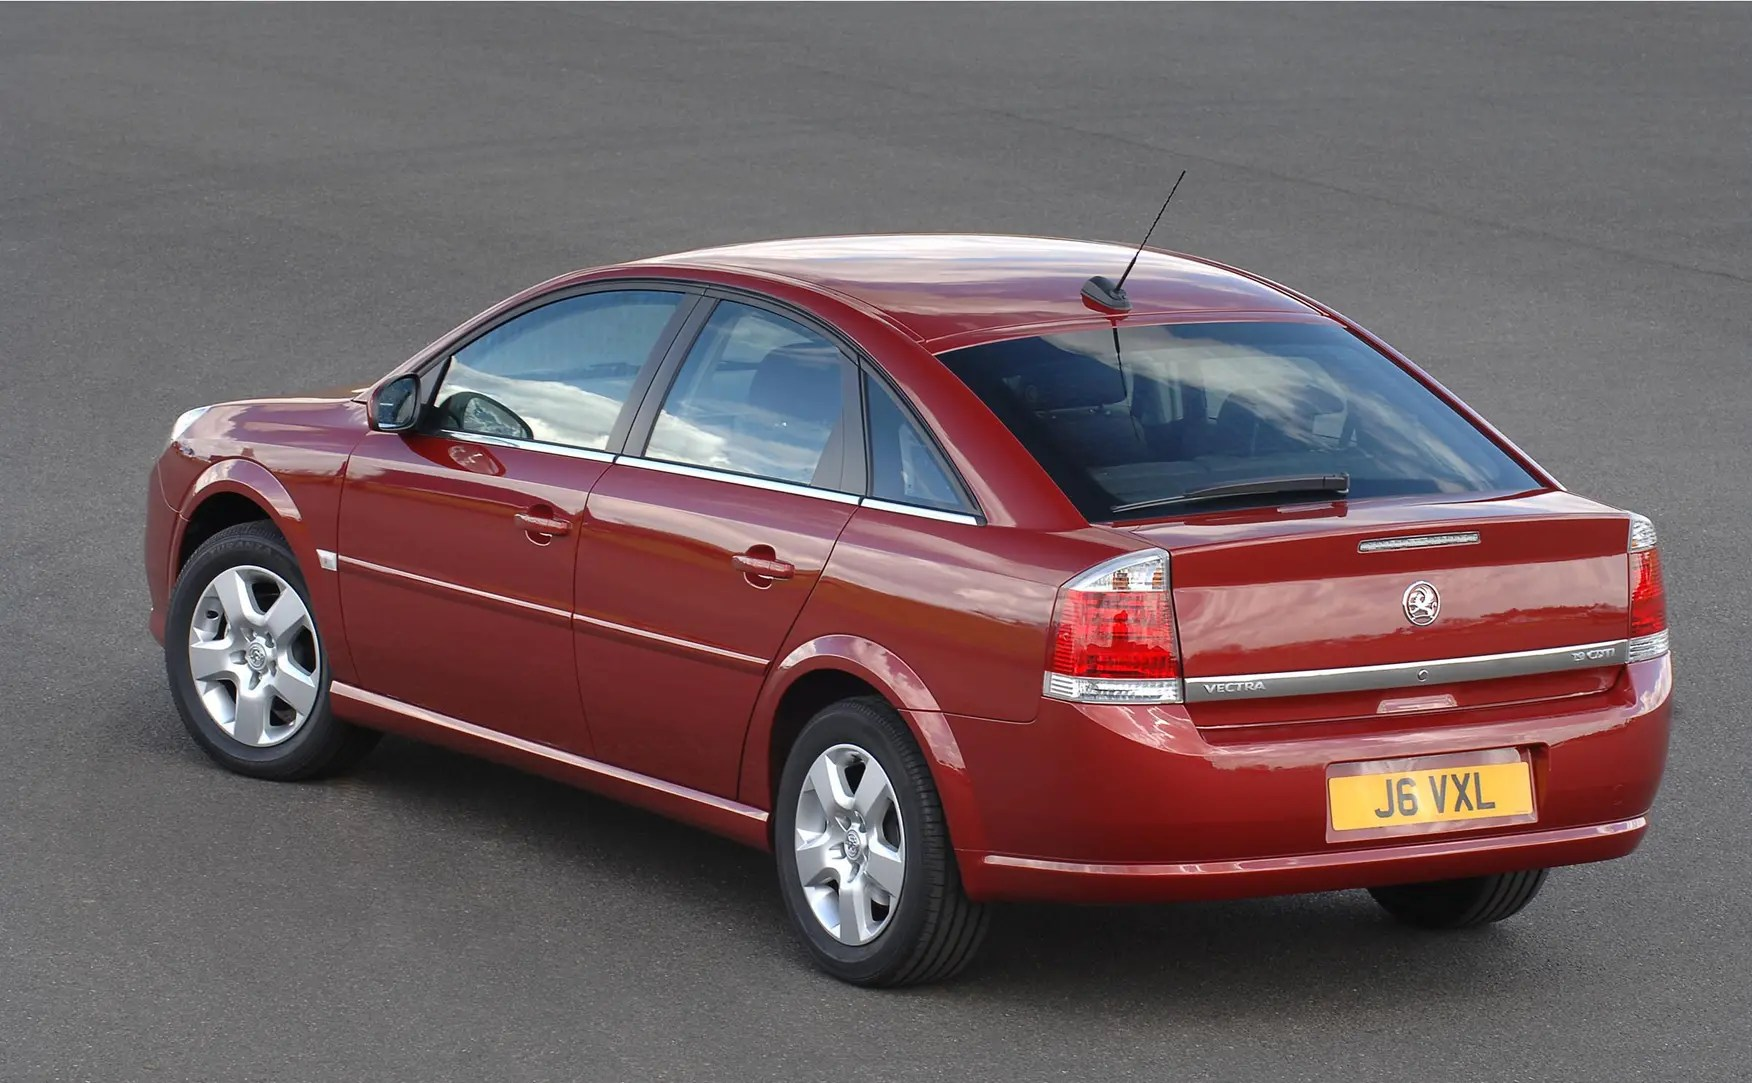 New Vauxhall Vectra Vauxhall Vectra Hatchback Review 2005 2008 Parkers